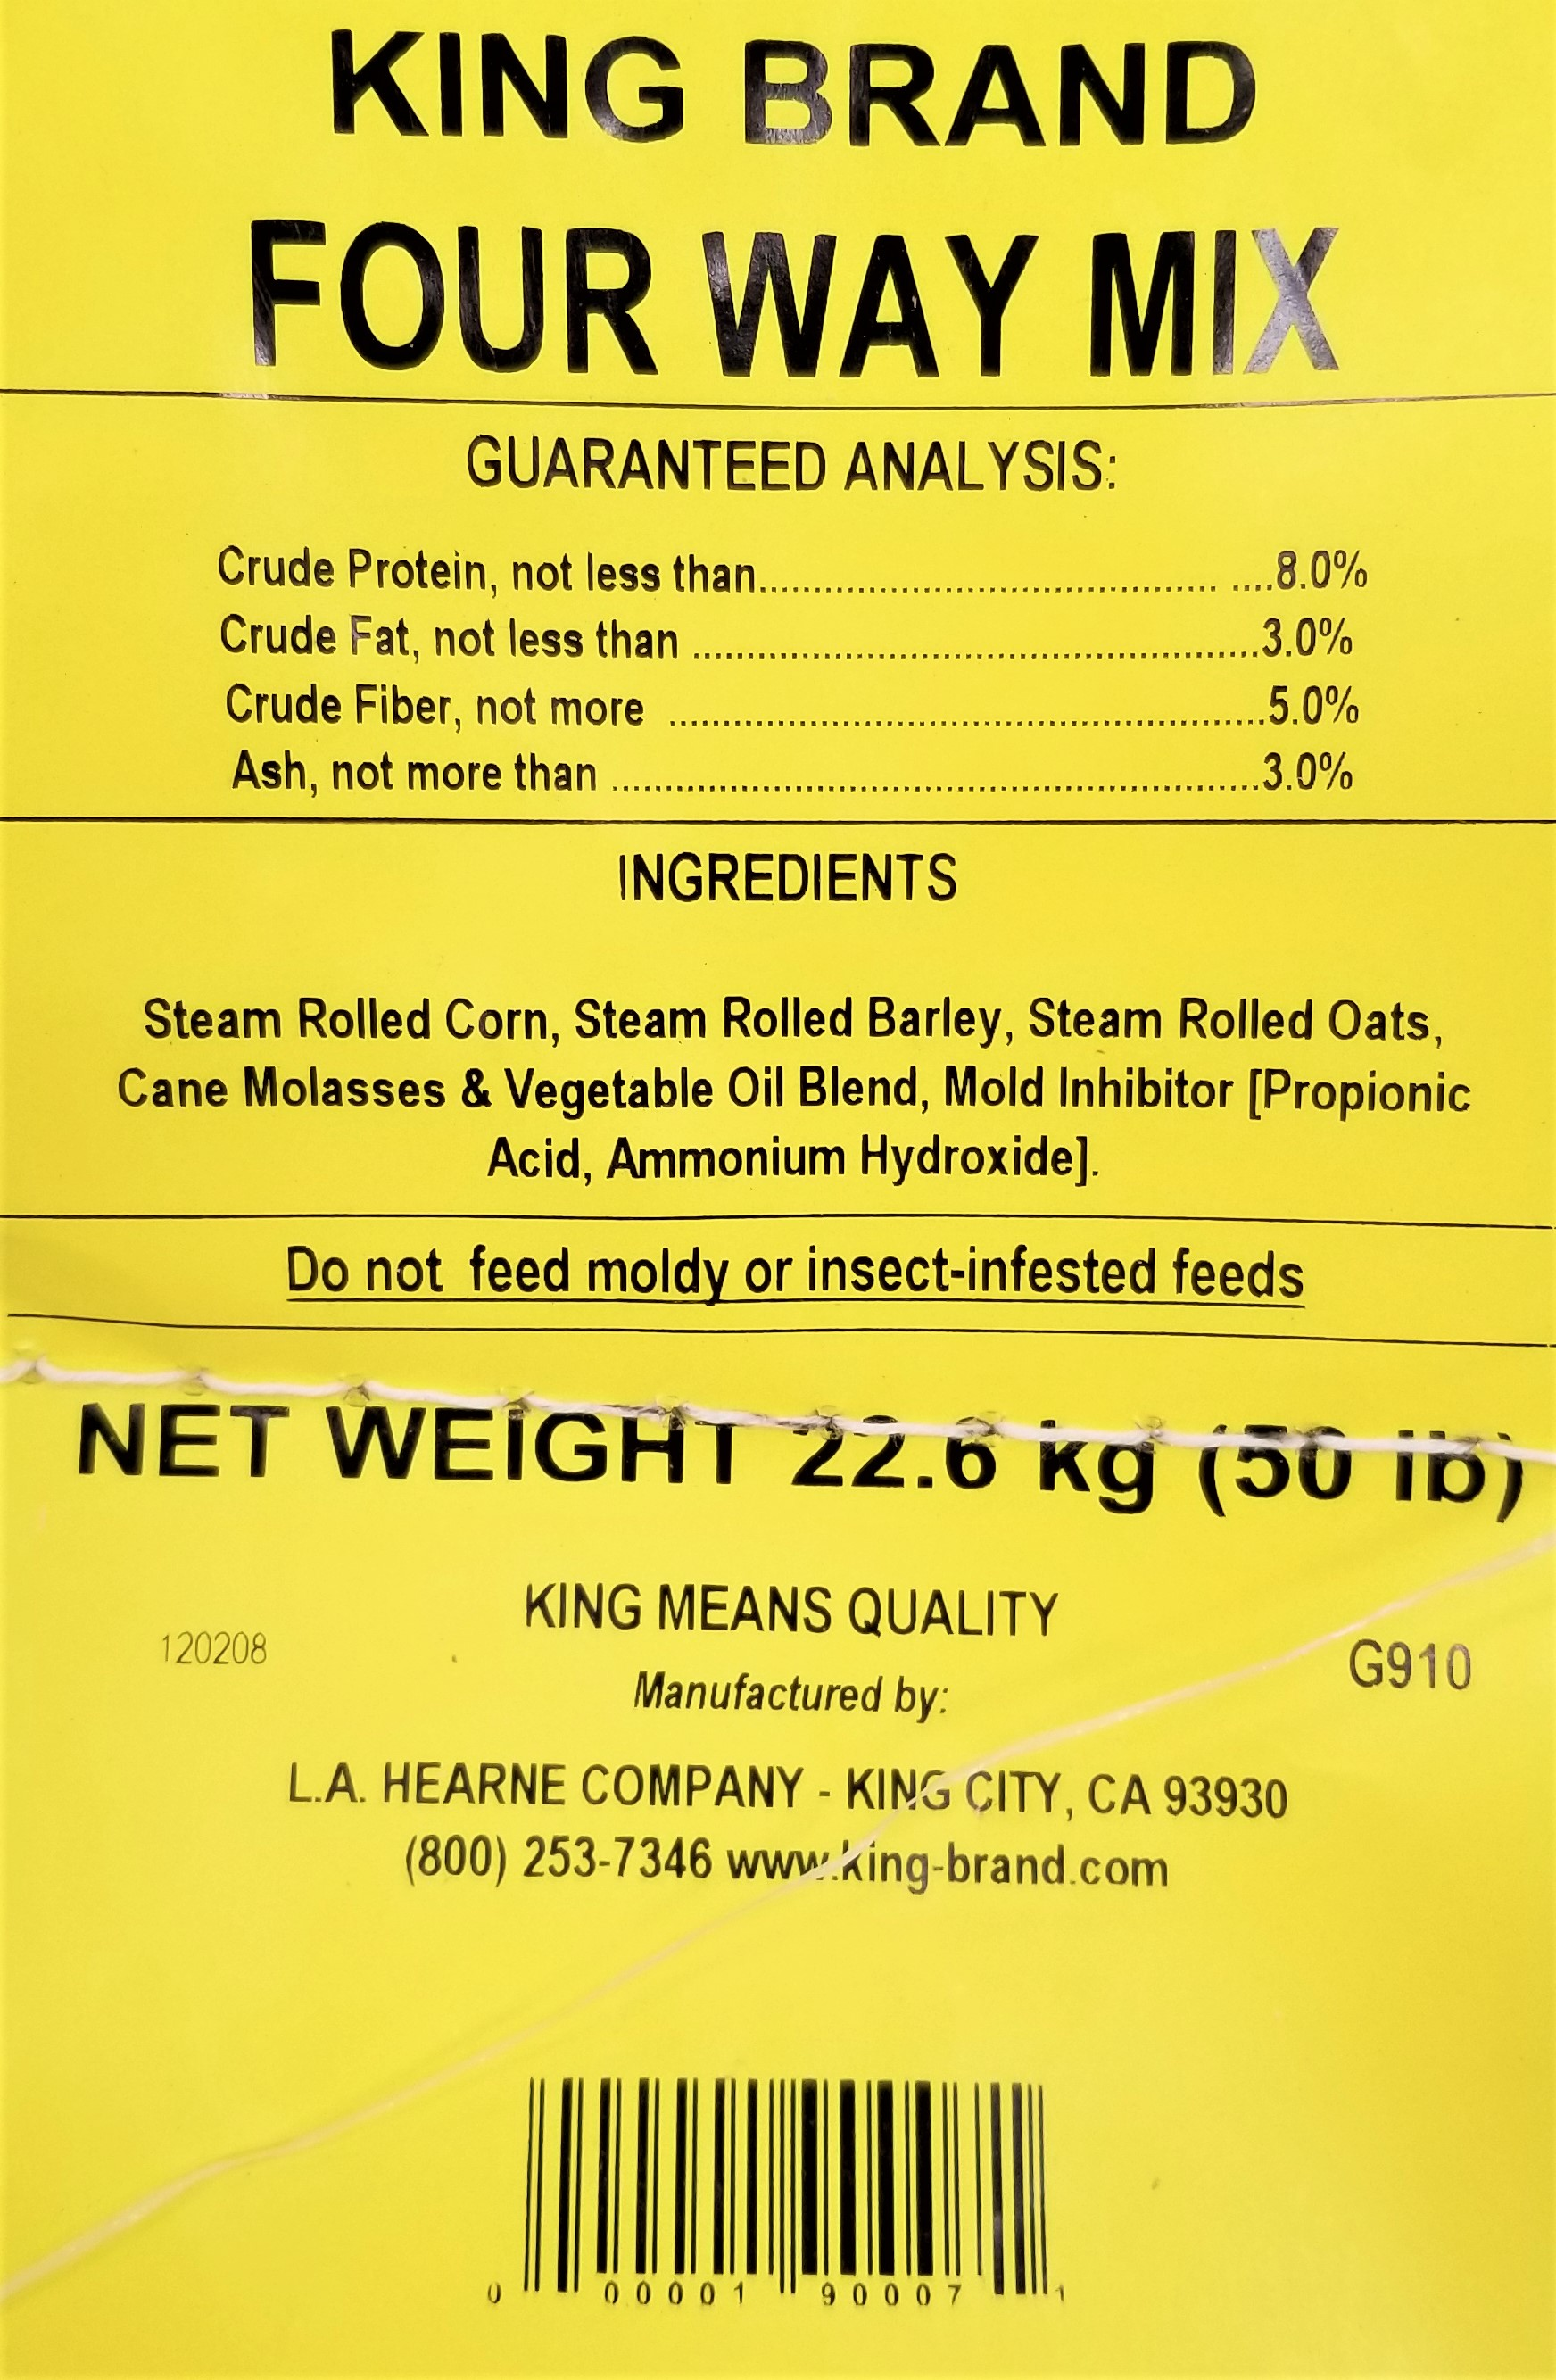 grain-king-four-way-mix-feed-wet-corn-oats-barley-fd022002-12.79-detail-label.jpg